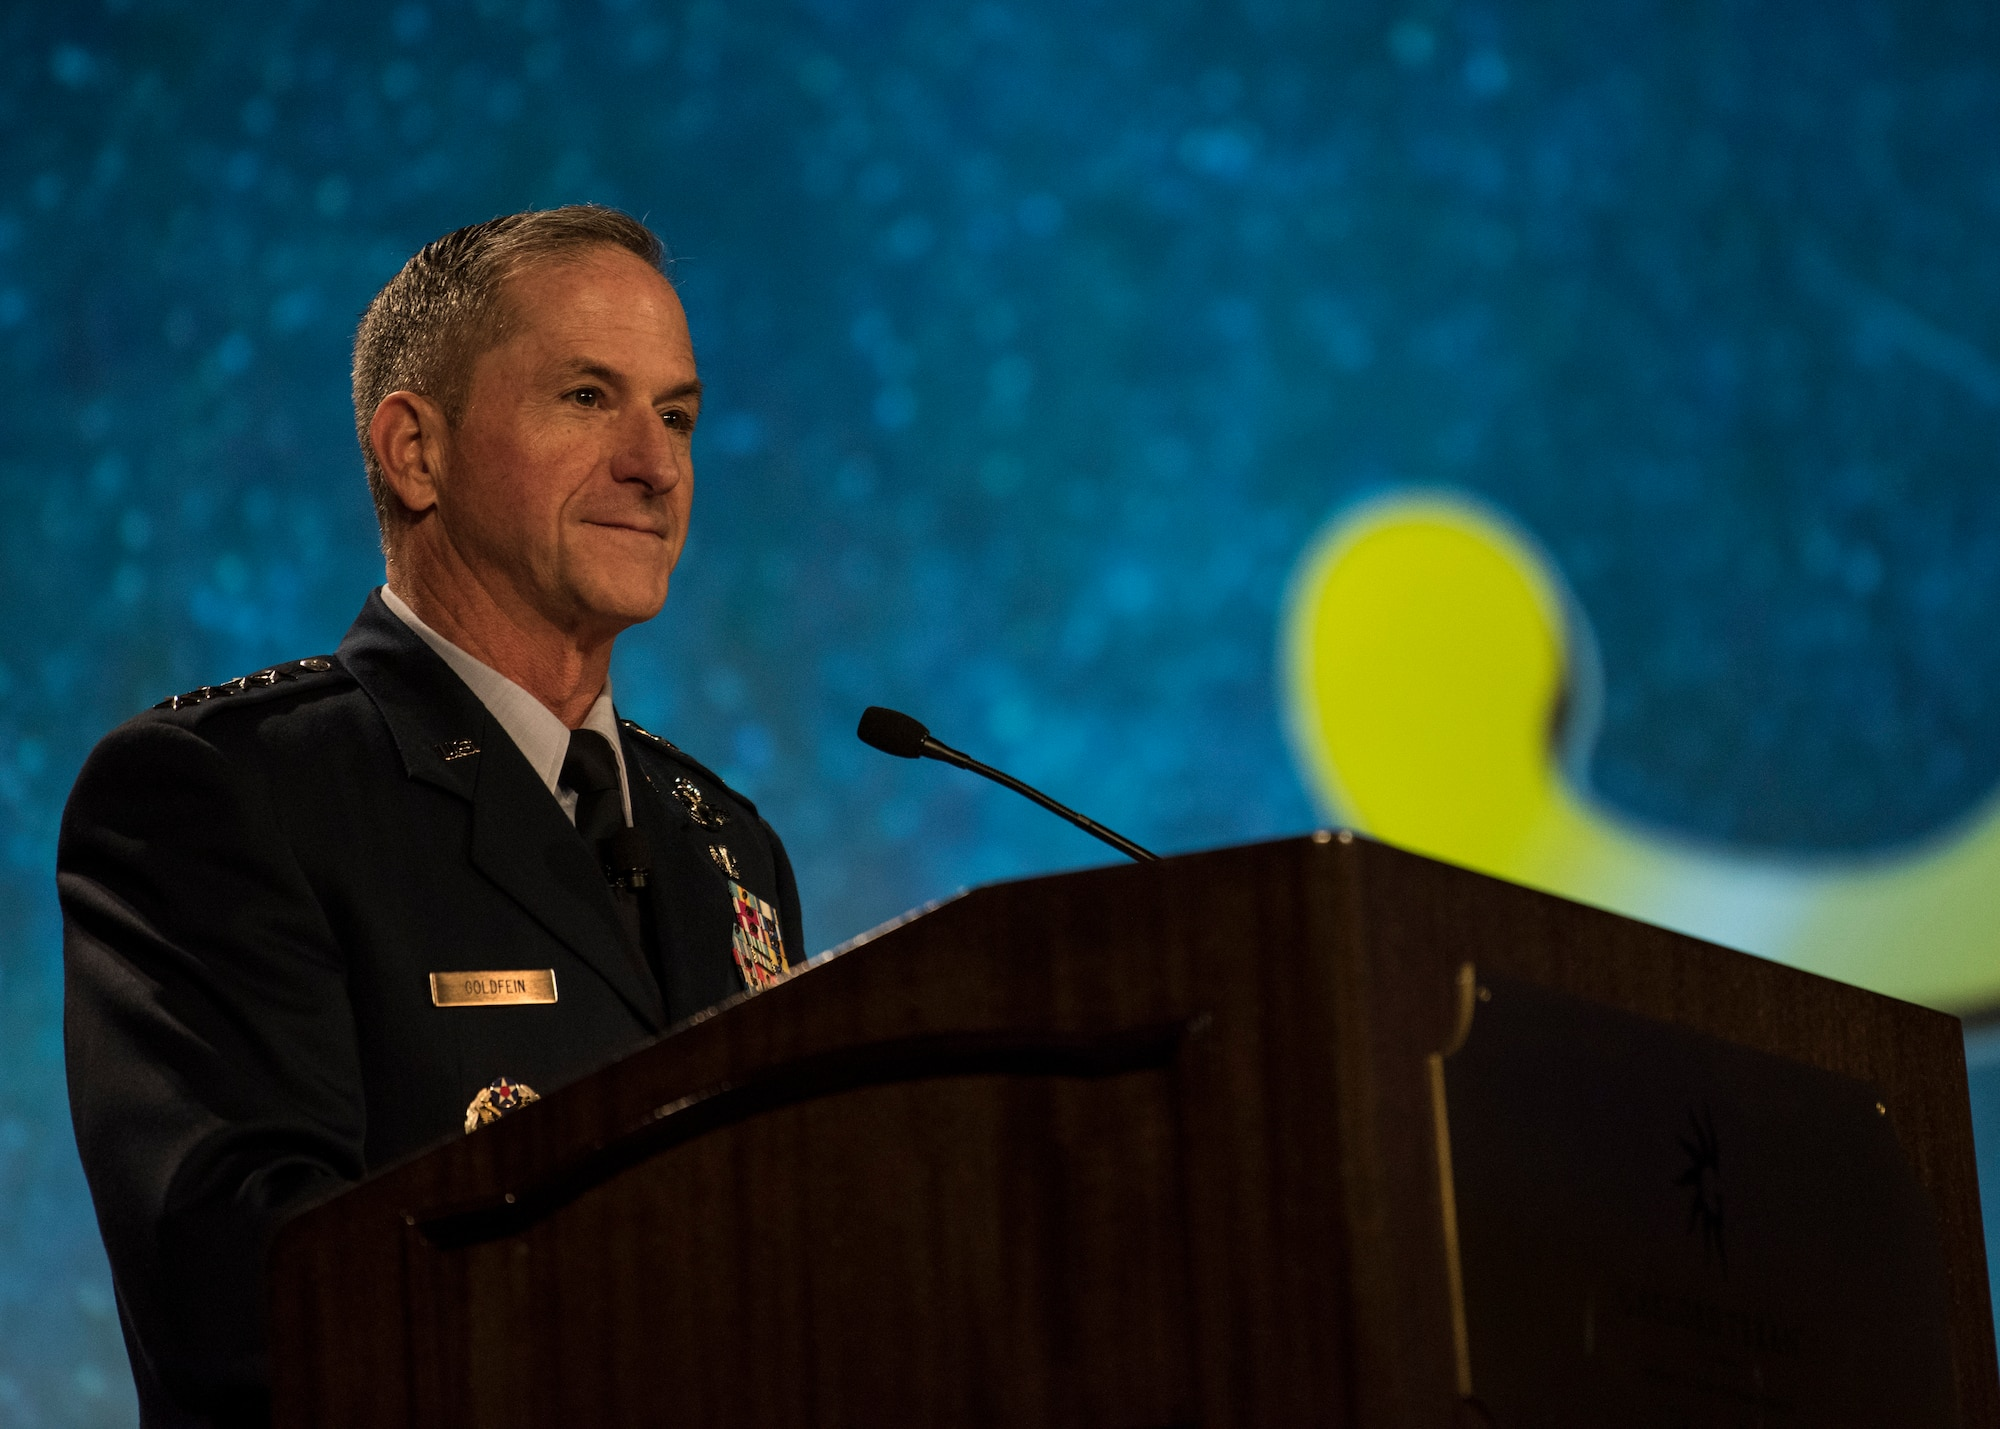 """Chief of Staff of the Air Force David L. Goldfein speaks during the Airlift/Tanker Association Symposium in Grapevine, Texas, Oct. 26, 2018. """"We have returned to an era of great power competition where the challenges we face are complex and require creative solutions,"""" said Goldfein. """"One of our jobs as leaders is to create the environment to unleash the brilliance in this room … to think through these challenges and acknowledge that there are opportunities resident in each."""" A/TA provides mobility Airmen a professional development forum to engage with industry experts within the mobility enterprise, attend seminars focused on mobility priorities, and listen to leadership perspectives from top leaders in the Air Force and Department of Defense. (U.S. Air Force photo by Tech. Sgt. Jodi Martinez)"""